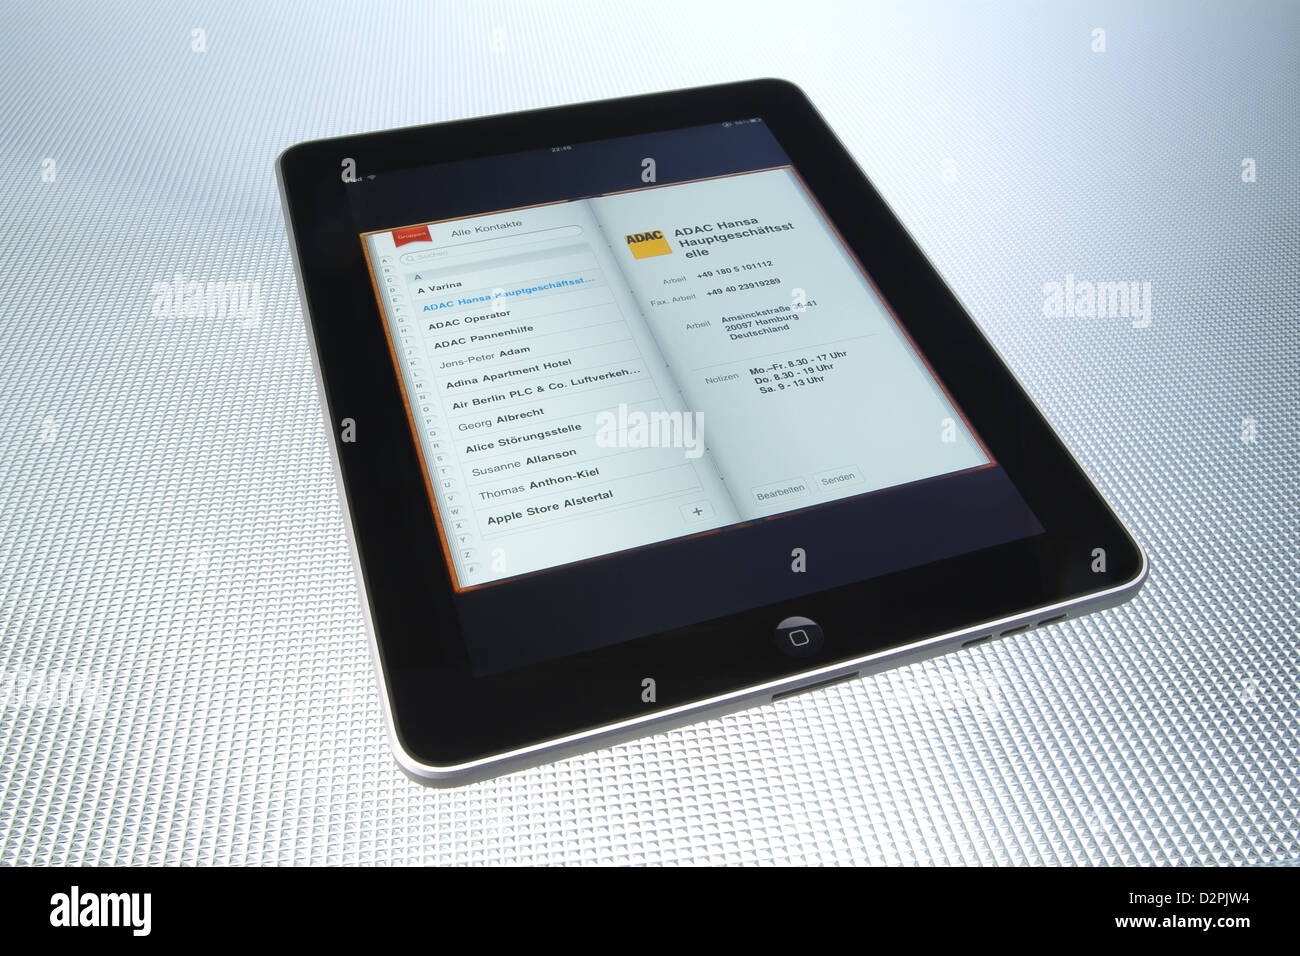 Hamburg, Germany manage, with the iPad from Apple Addresses and contacts - Stock Image